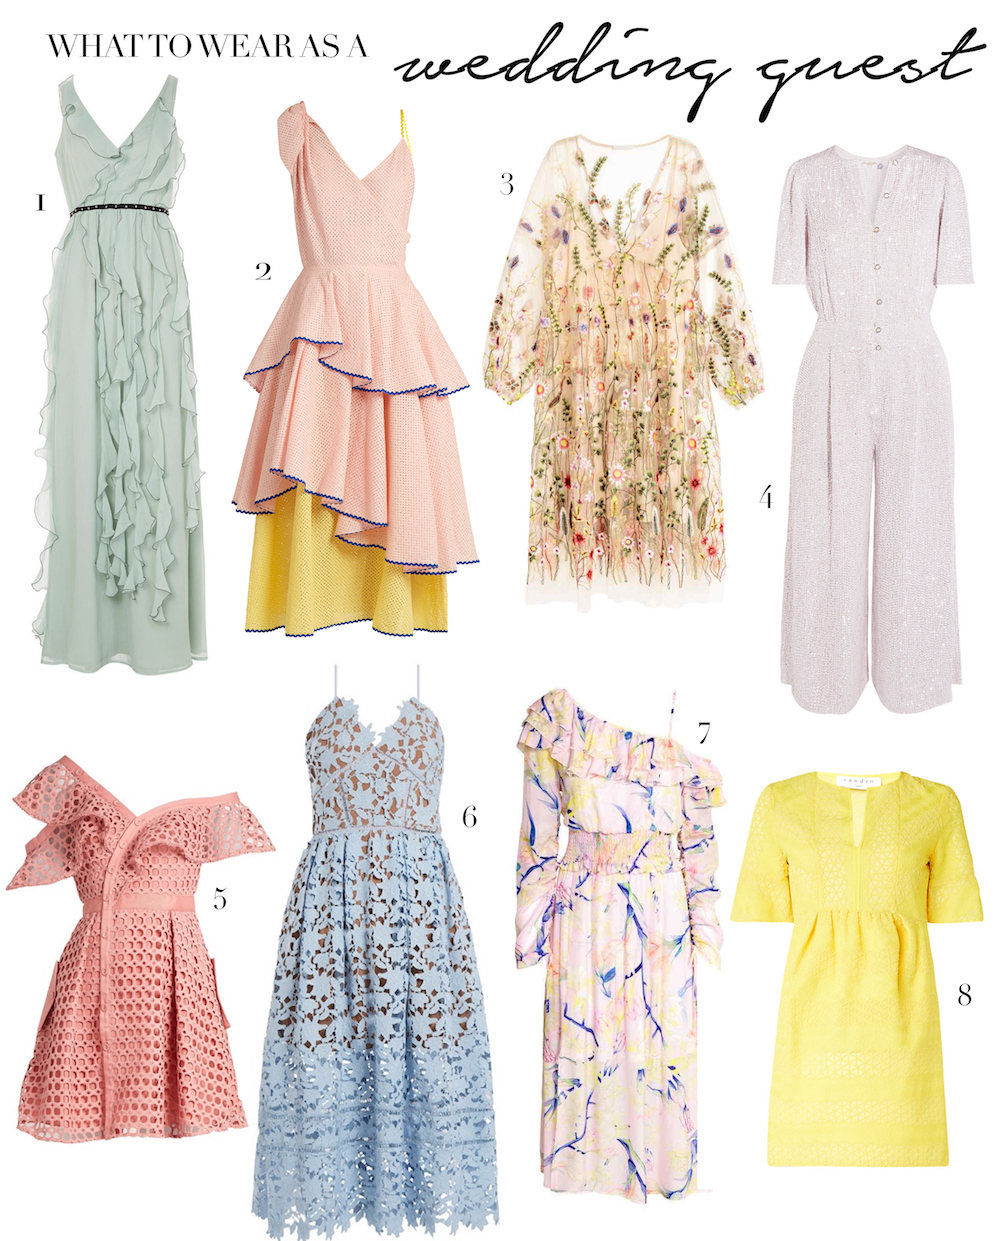 wedding-guest-mom-shopping-pastels-the-mom